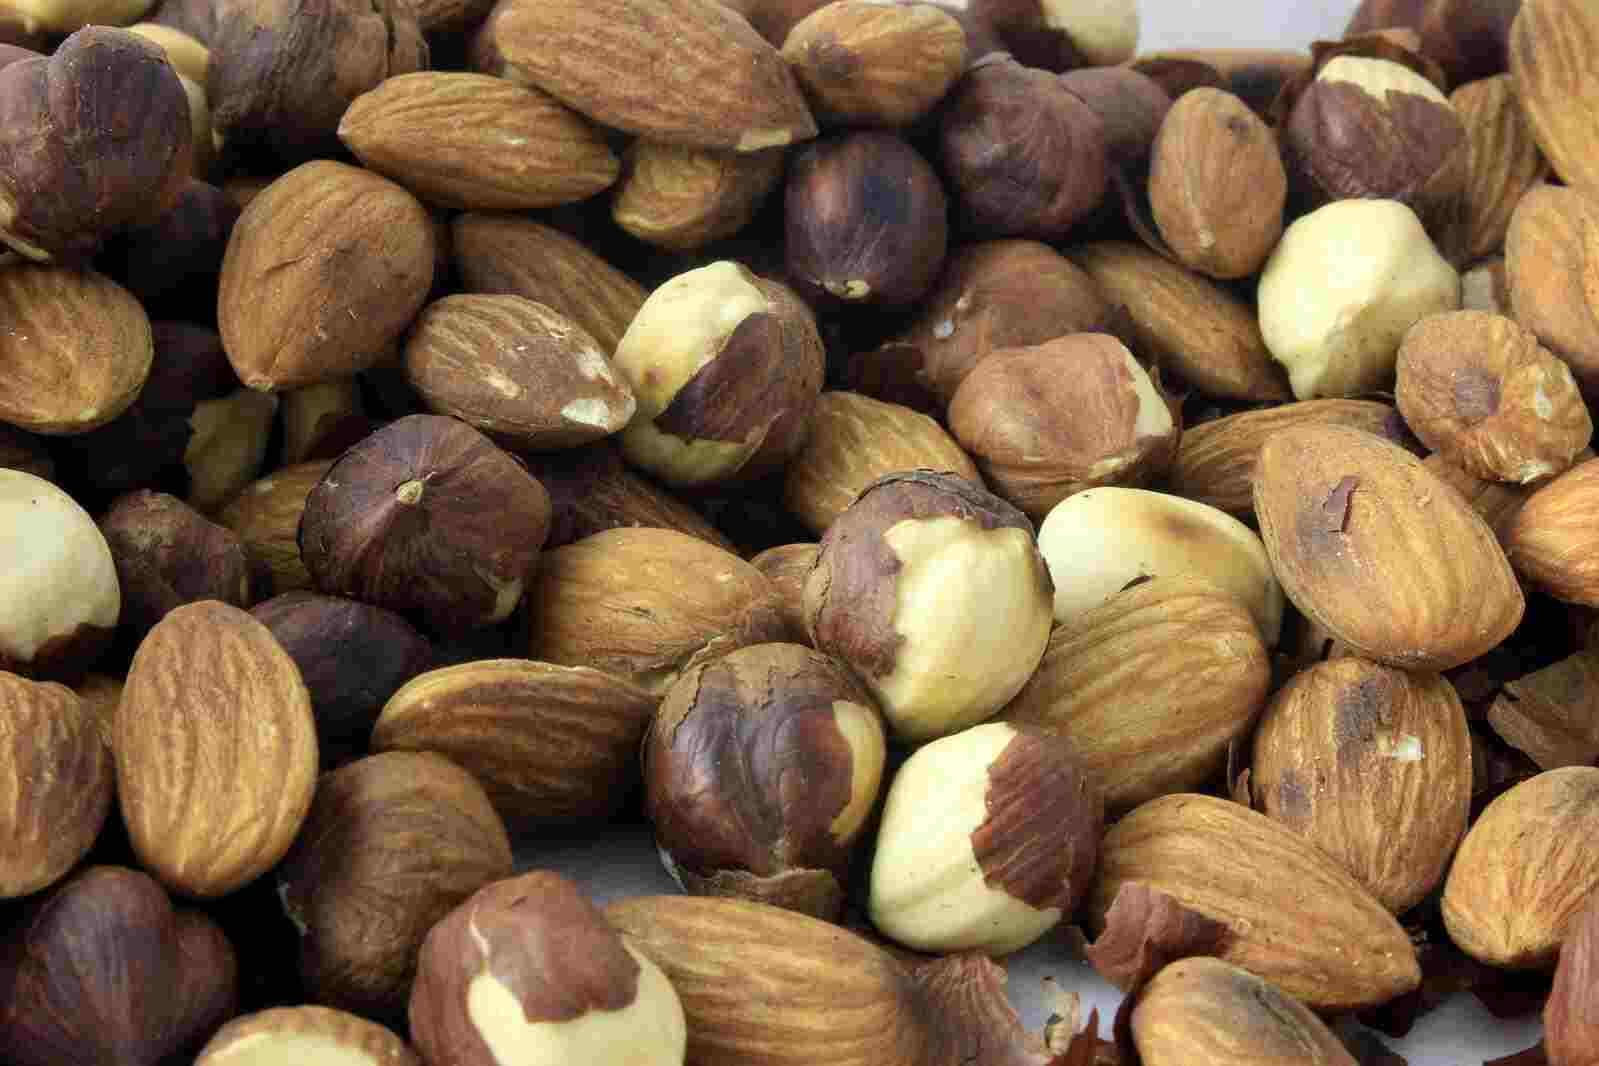 various nuts, including hazelnuts and almonds